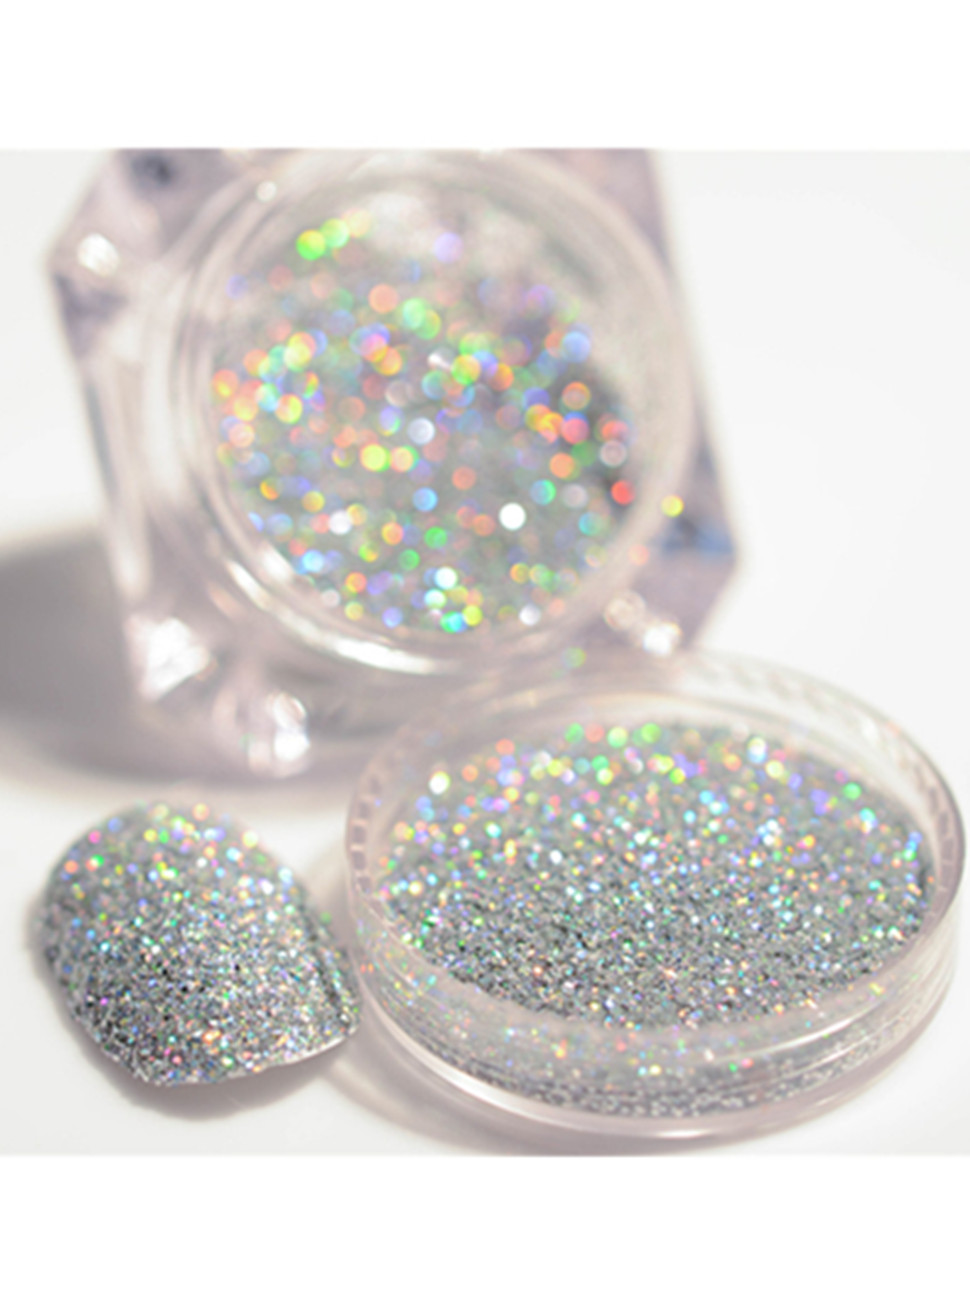 Amazon.com: BORN PRETTY 2g/Box Holographic Laser Powder Gorgeous ...